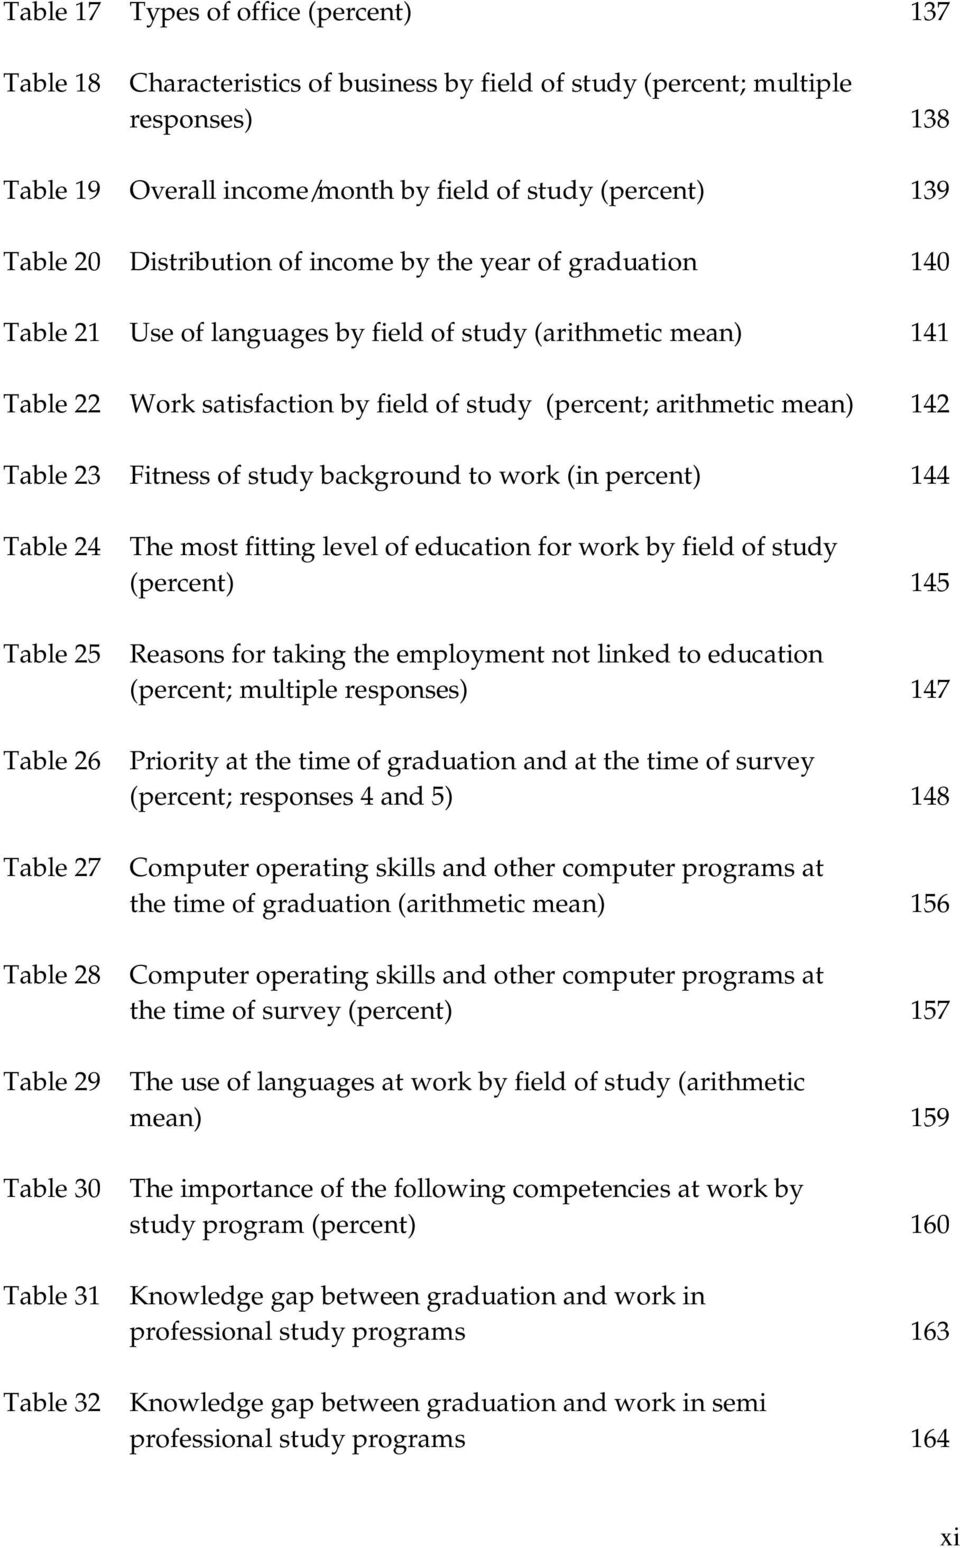 Table 23 Fitness of study background to work (in percent) 144 Table 24 Table 25 Table 26 Table 27 Table 28 Table 29 Table 30 Table 31 Table 32 The most fitting level of education for work by field of